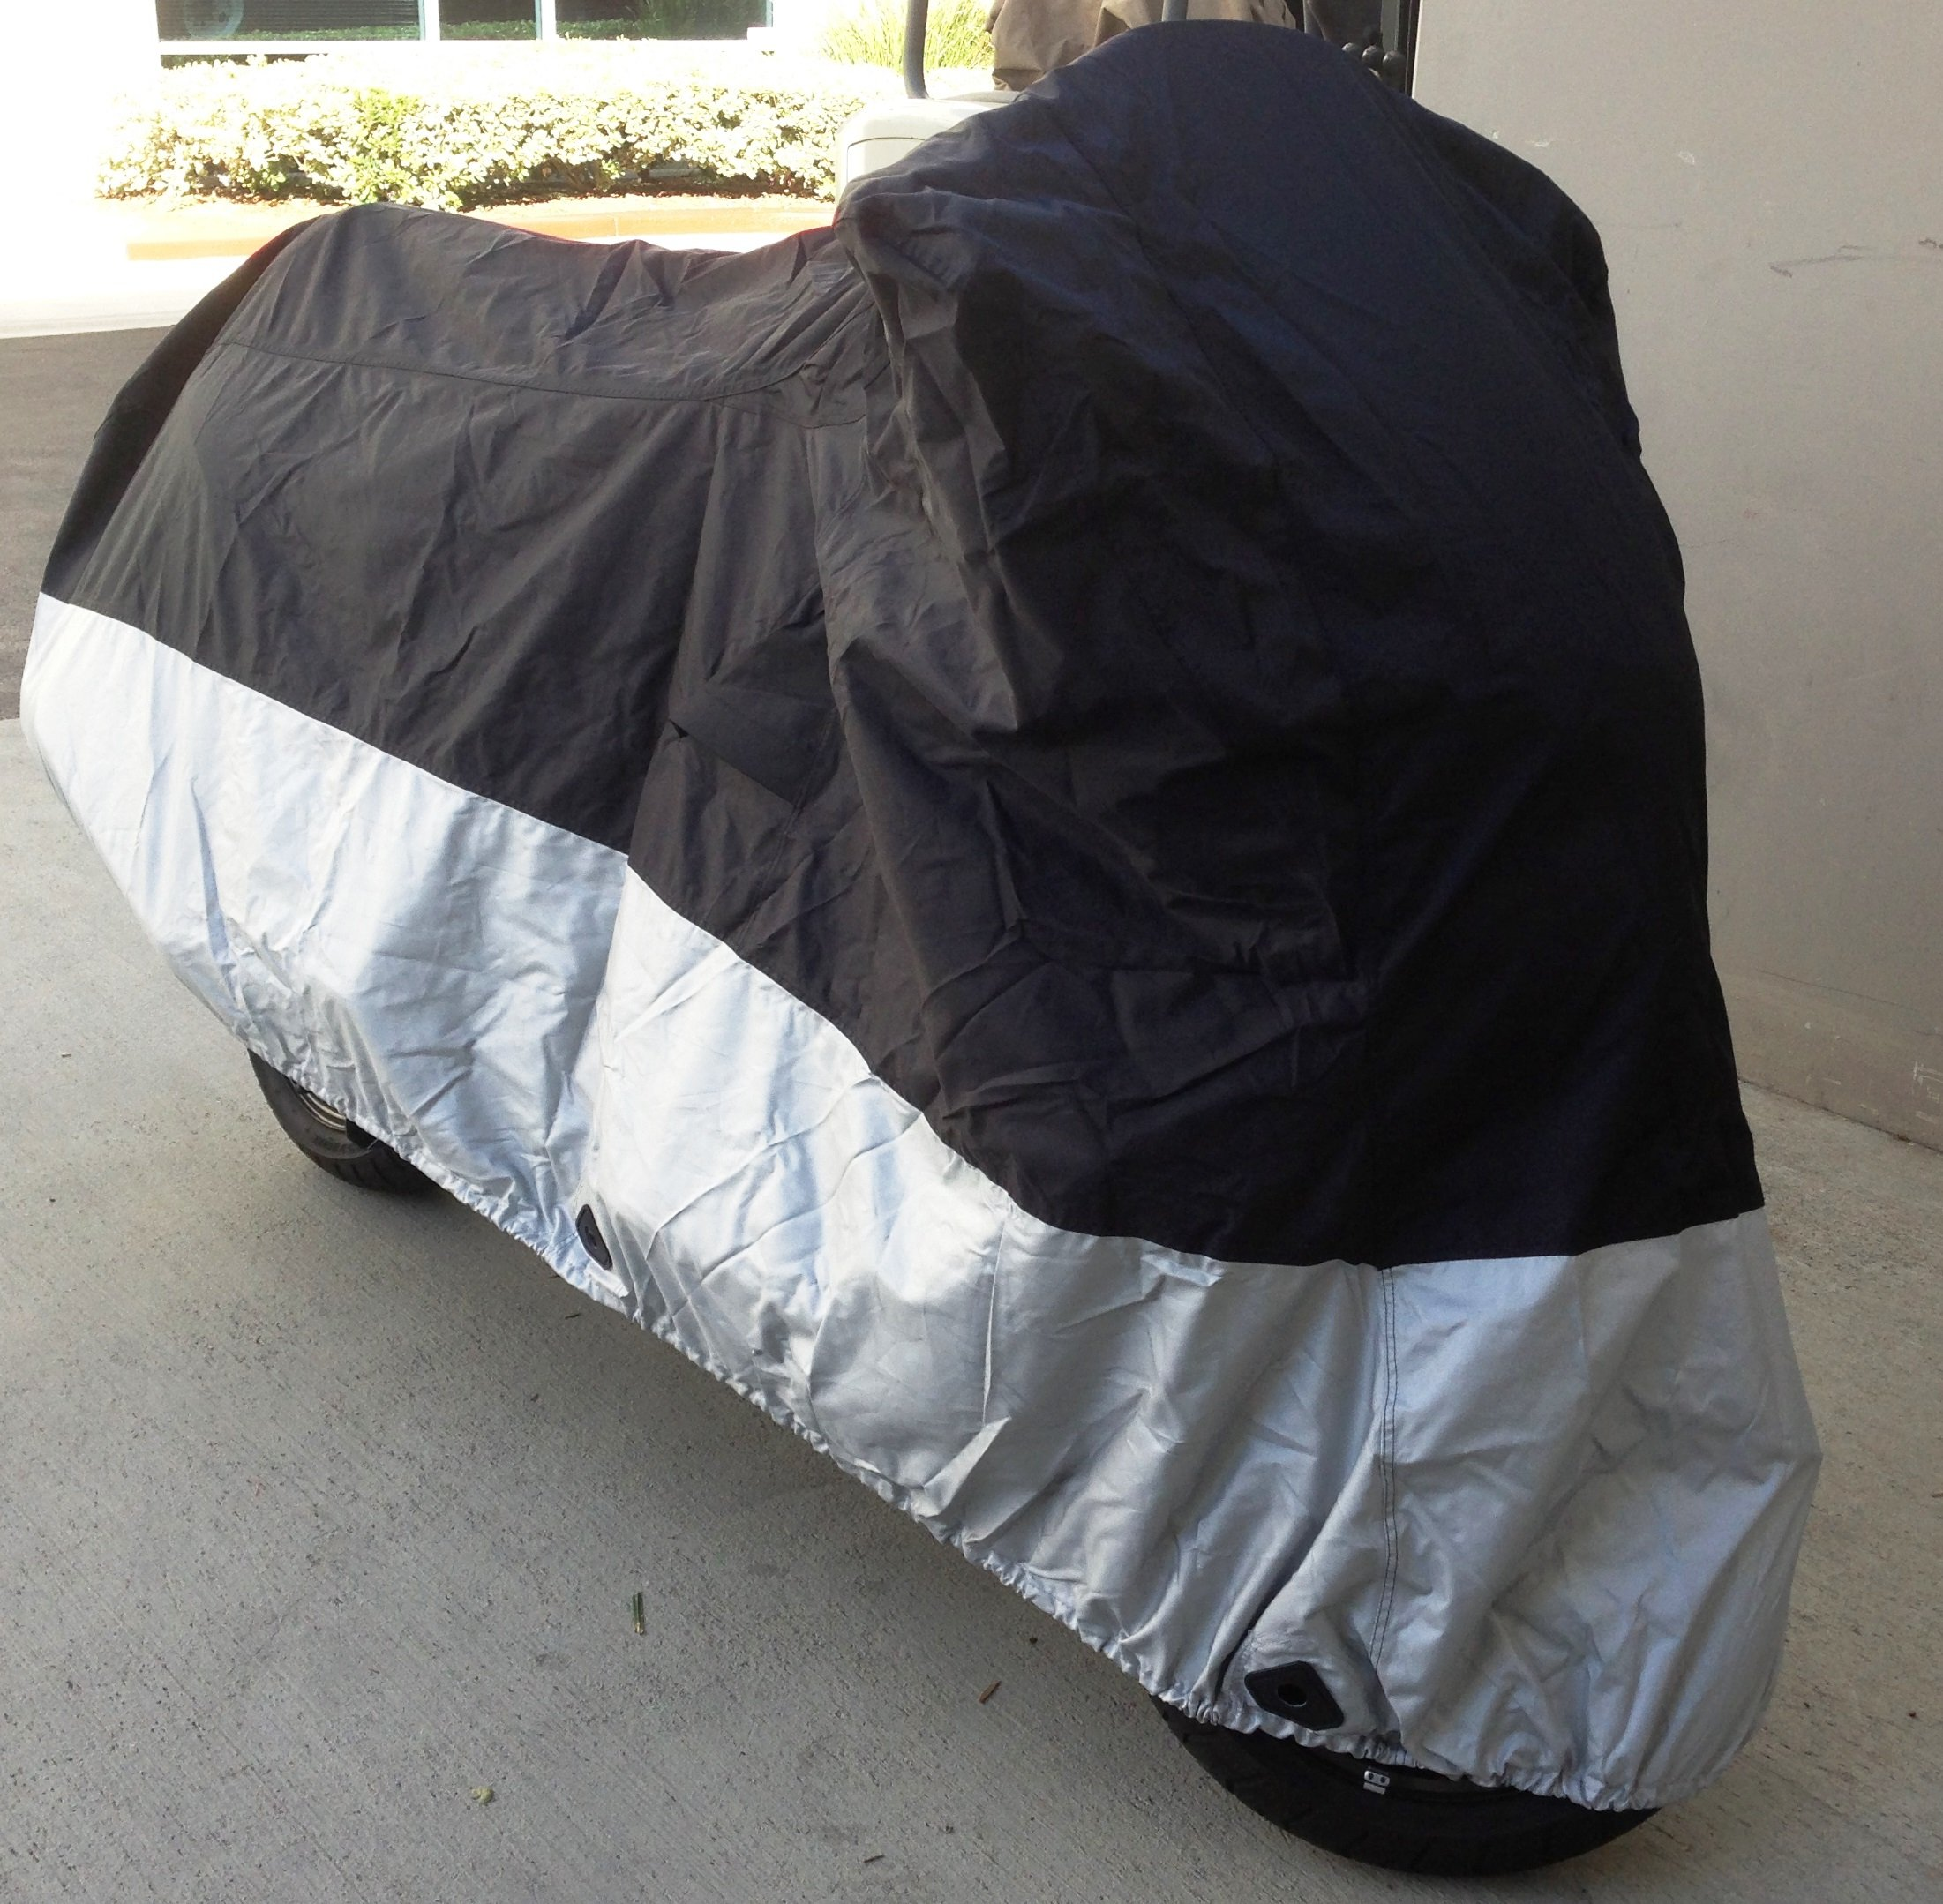 Heavy Duty Motorcycle cover (XL) with cable & lock. Fits up to 94'' length Medium cruiser, Large sport bike.